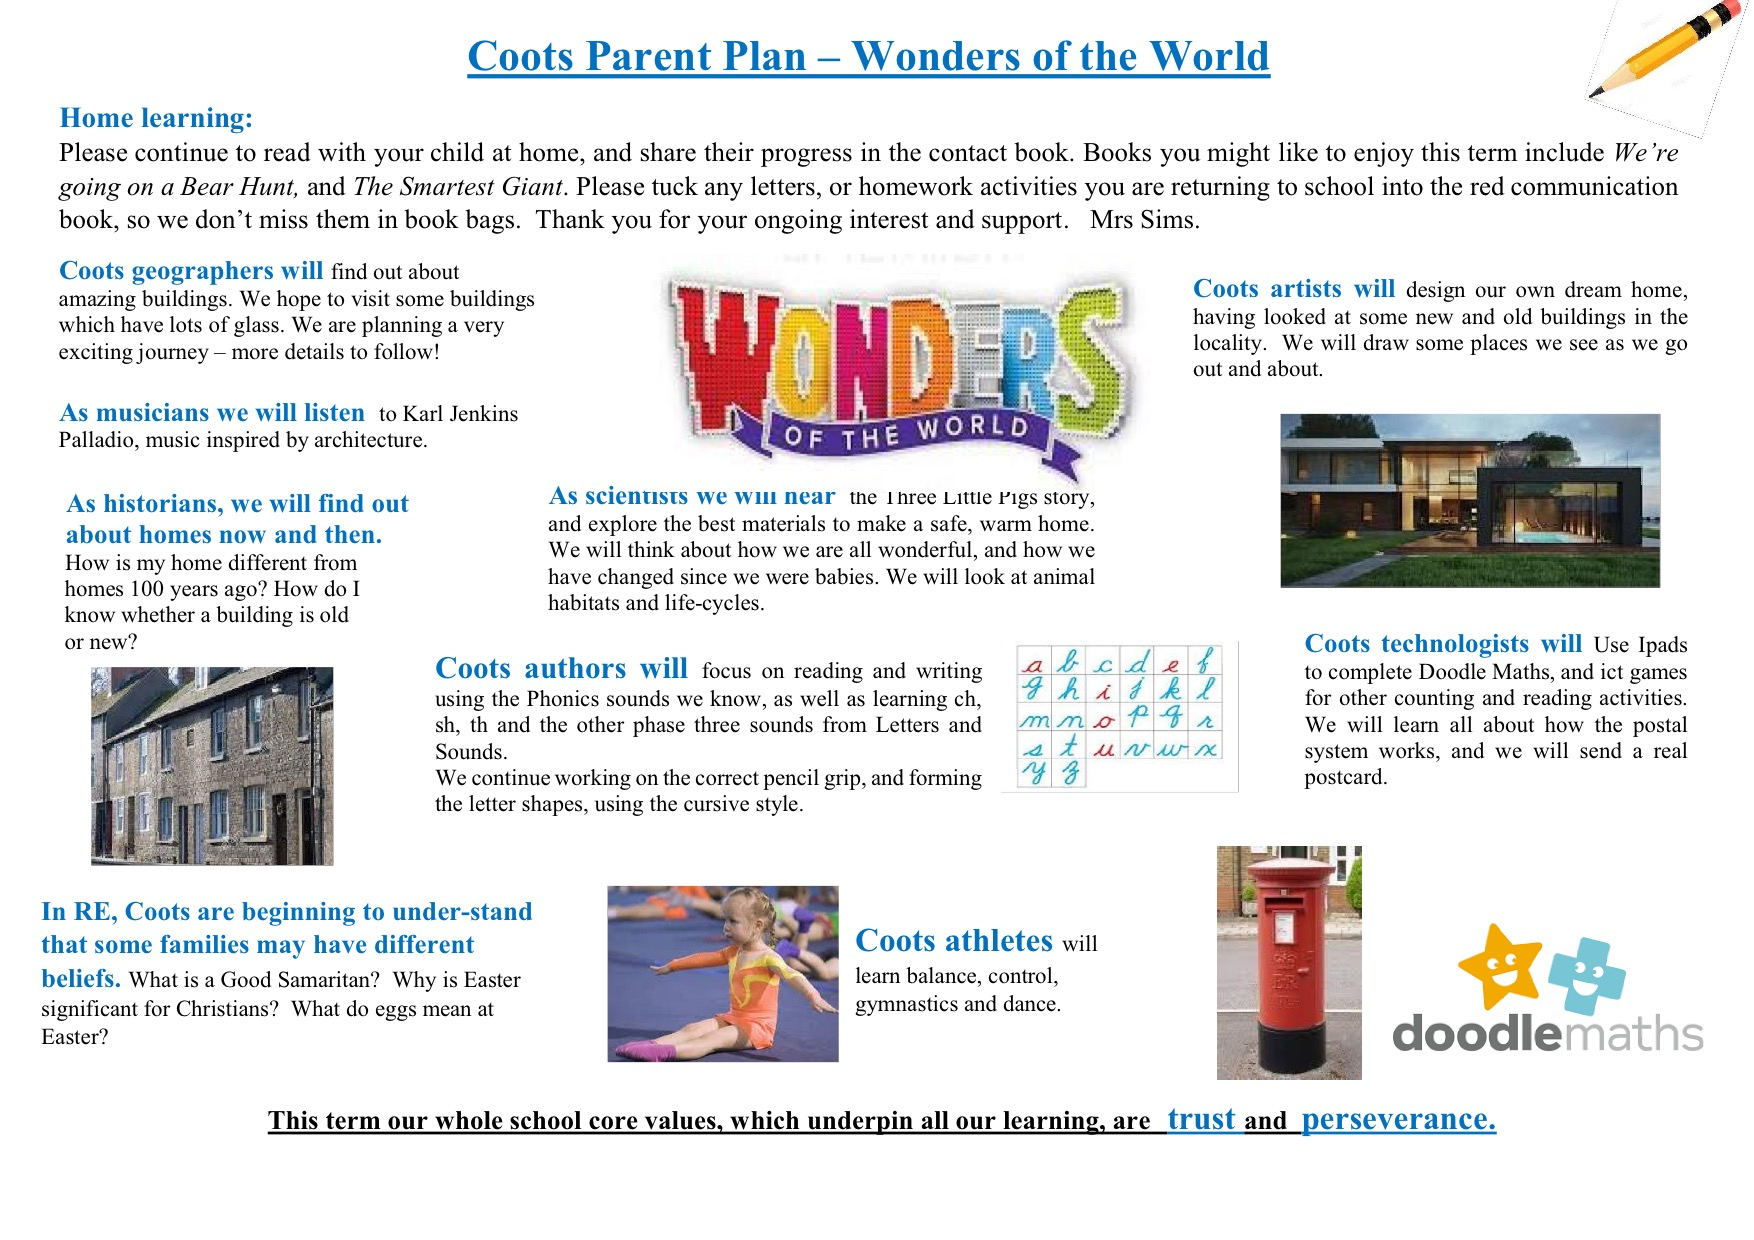 WotW Coots topic plan for parents